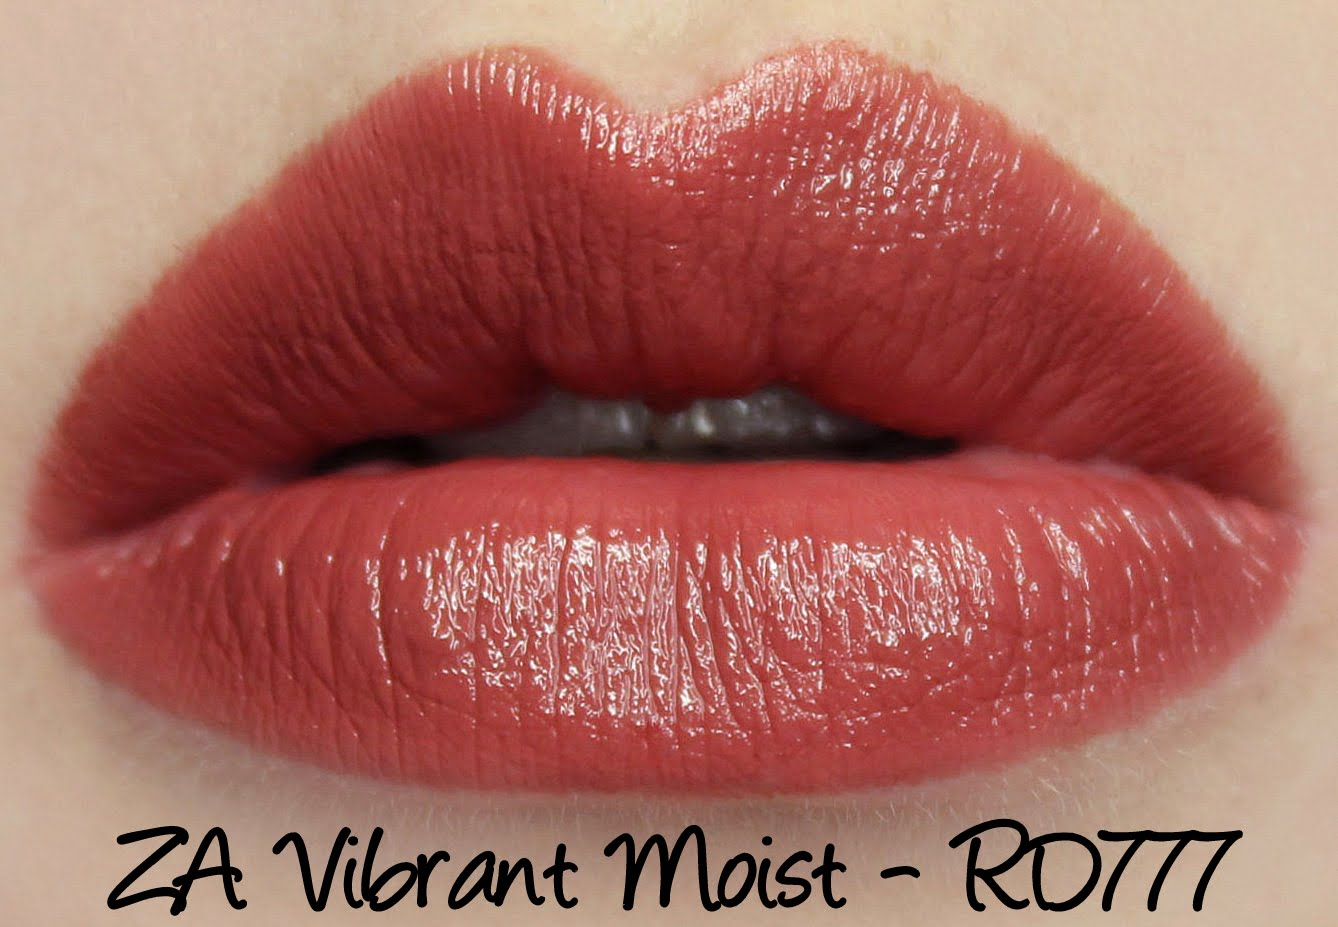 ZA Vibrant Moist Lipstick - RD777 swatches & review